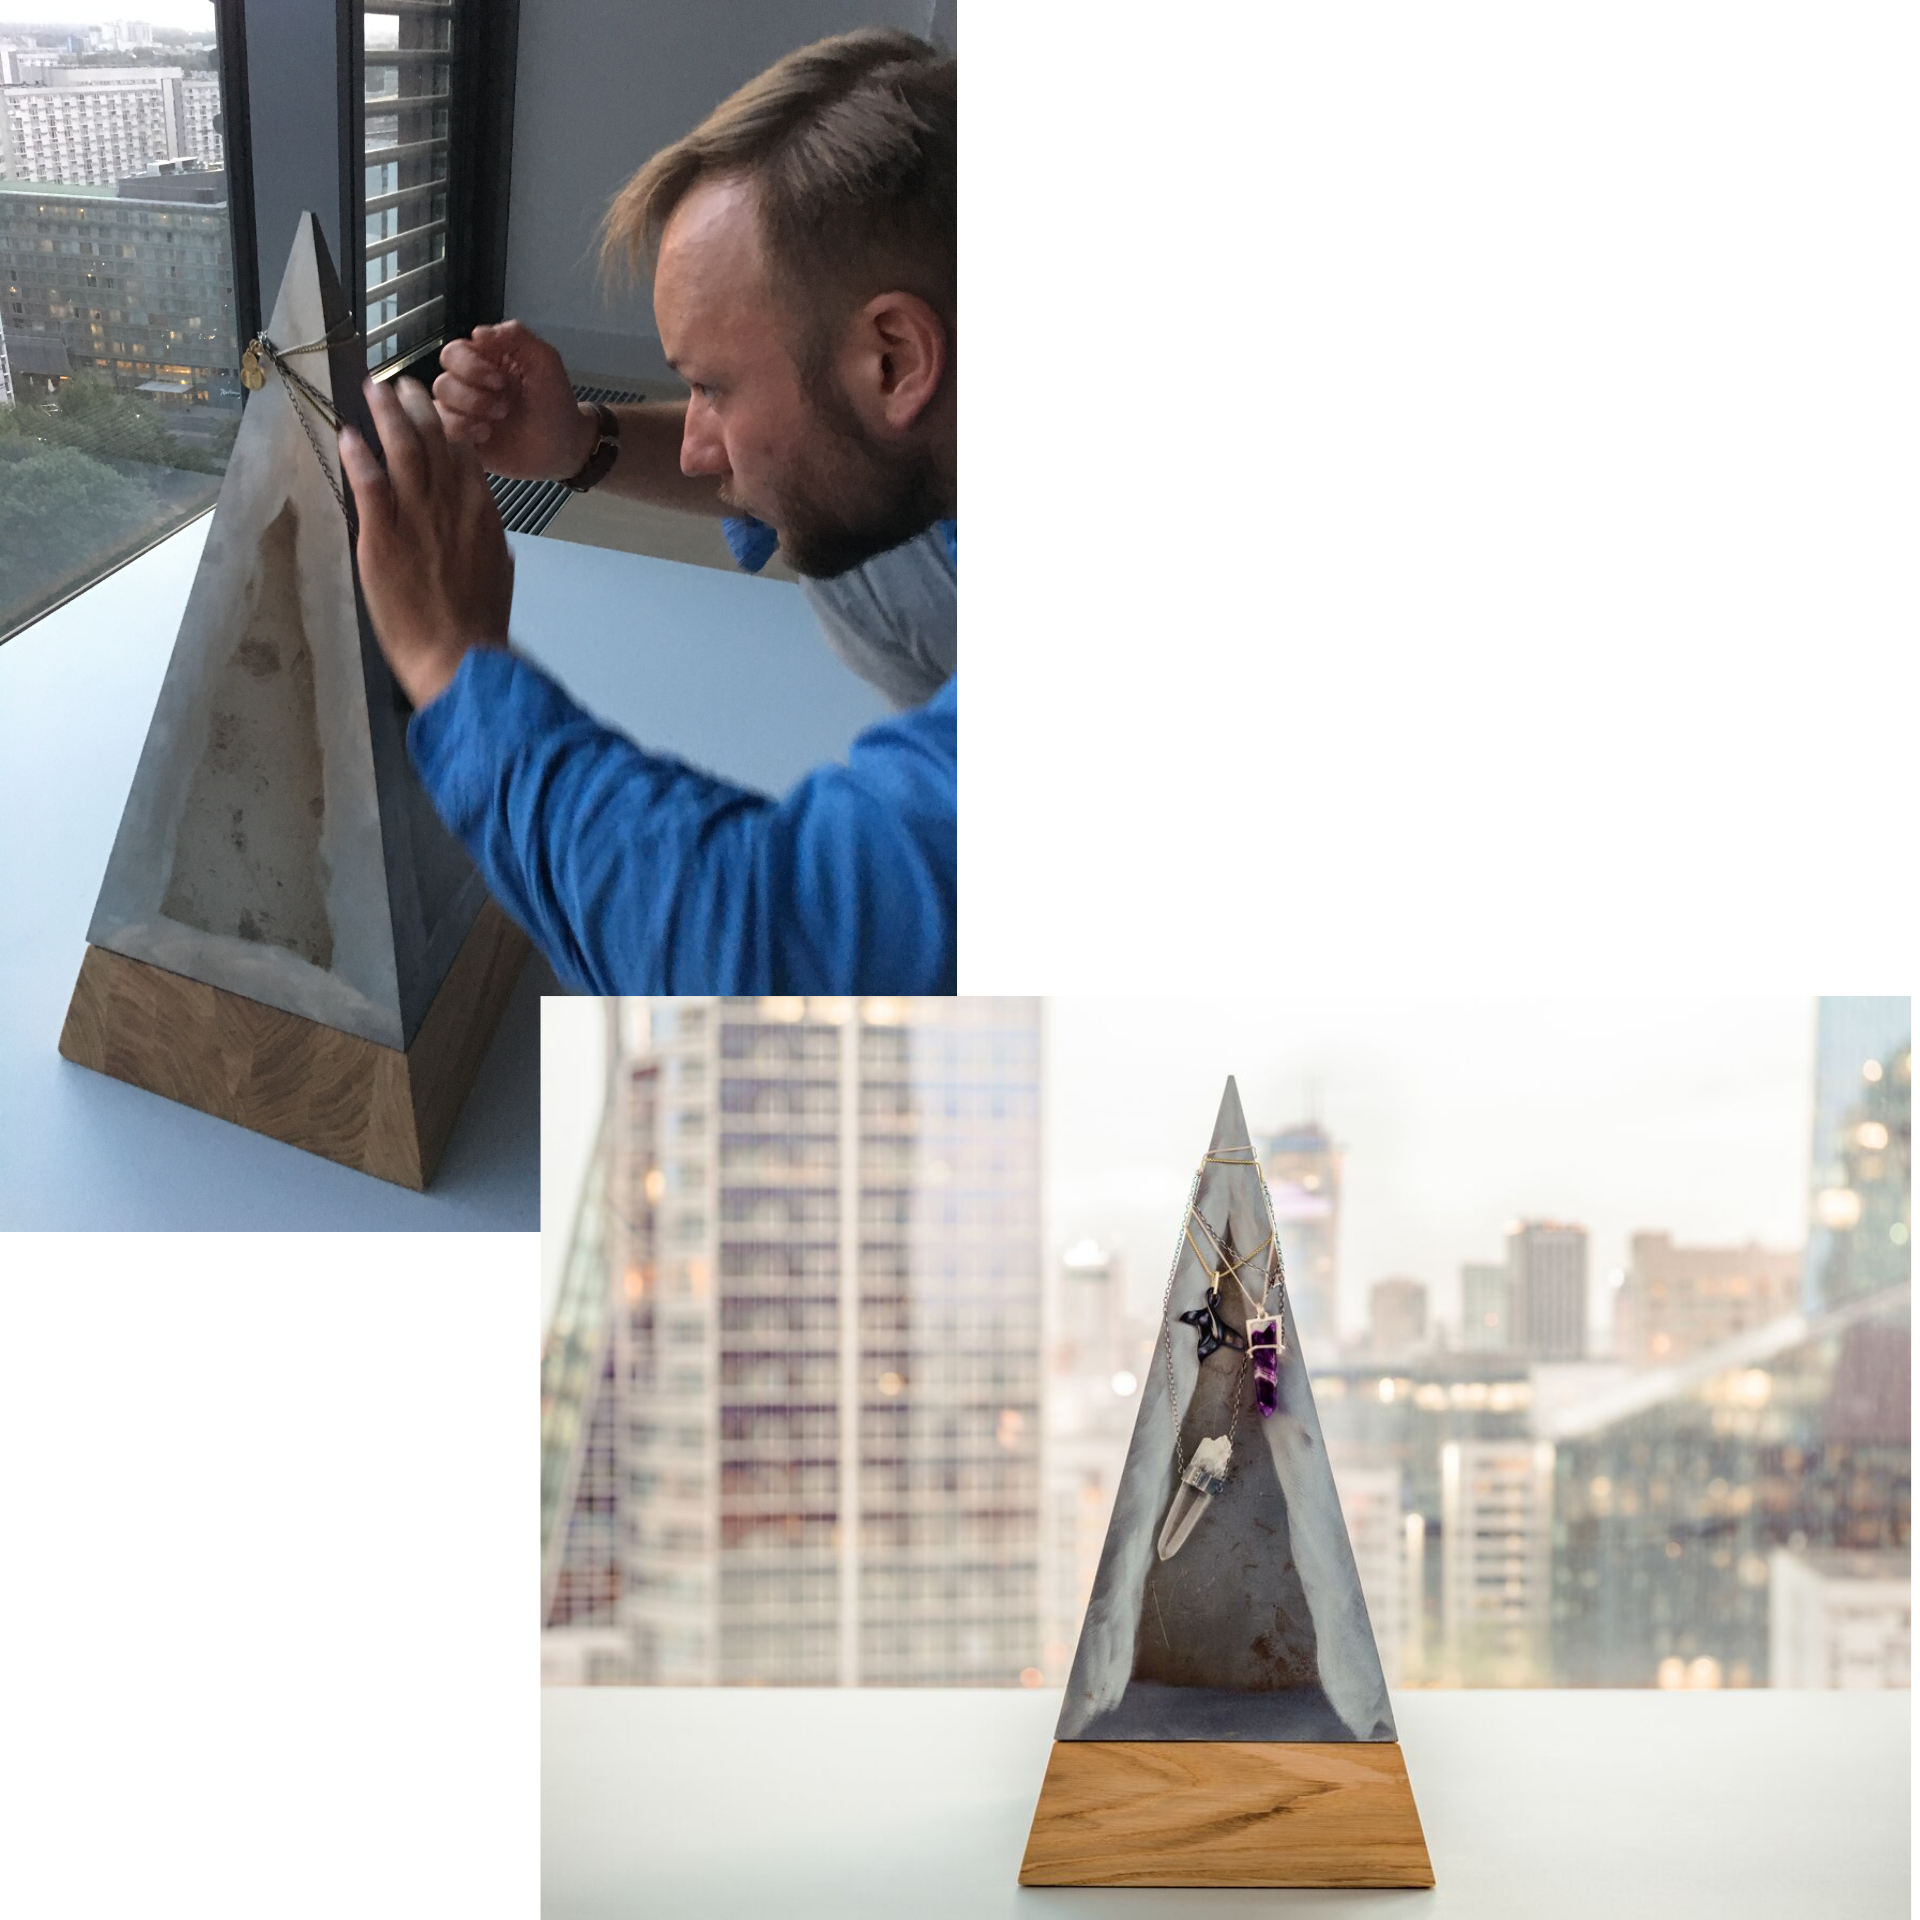 Luxury Pyramid Table - Artistic Sculpture or Modern Multifunctional Furniture